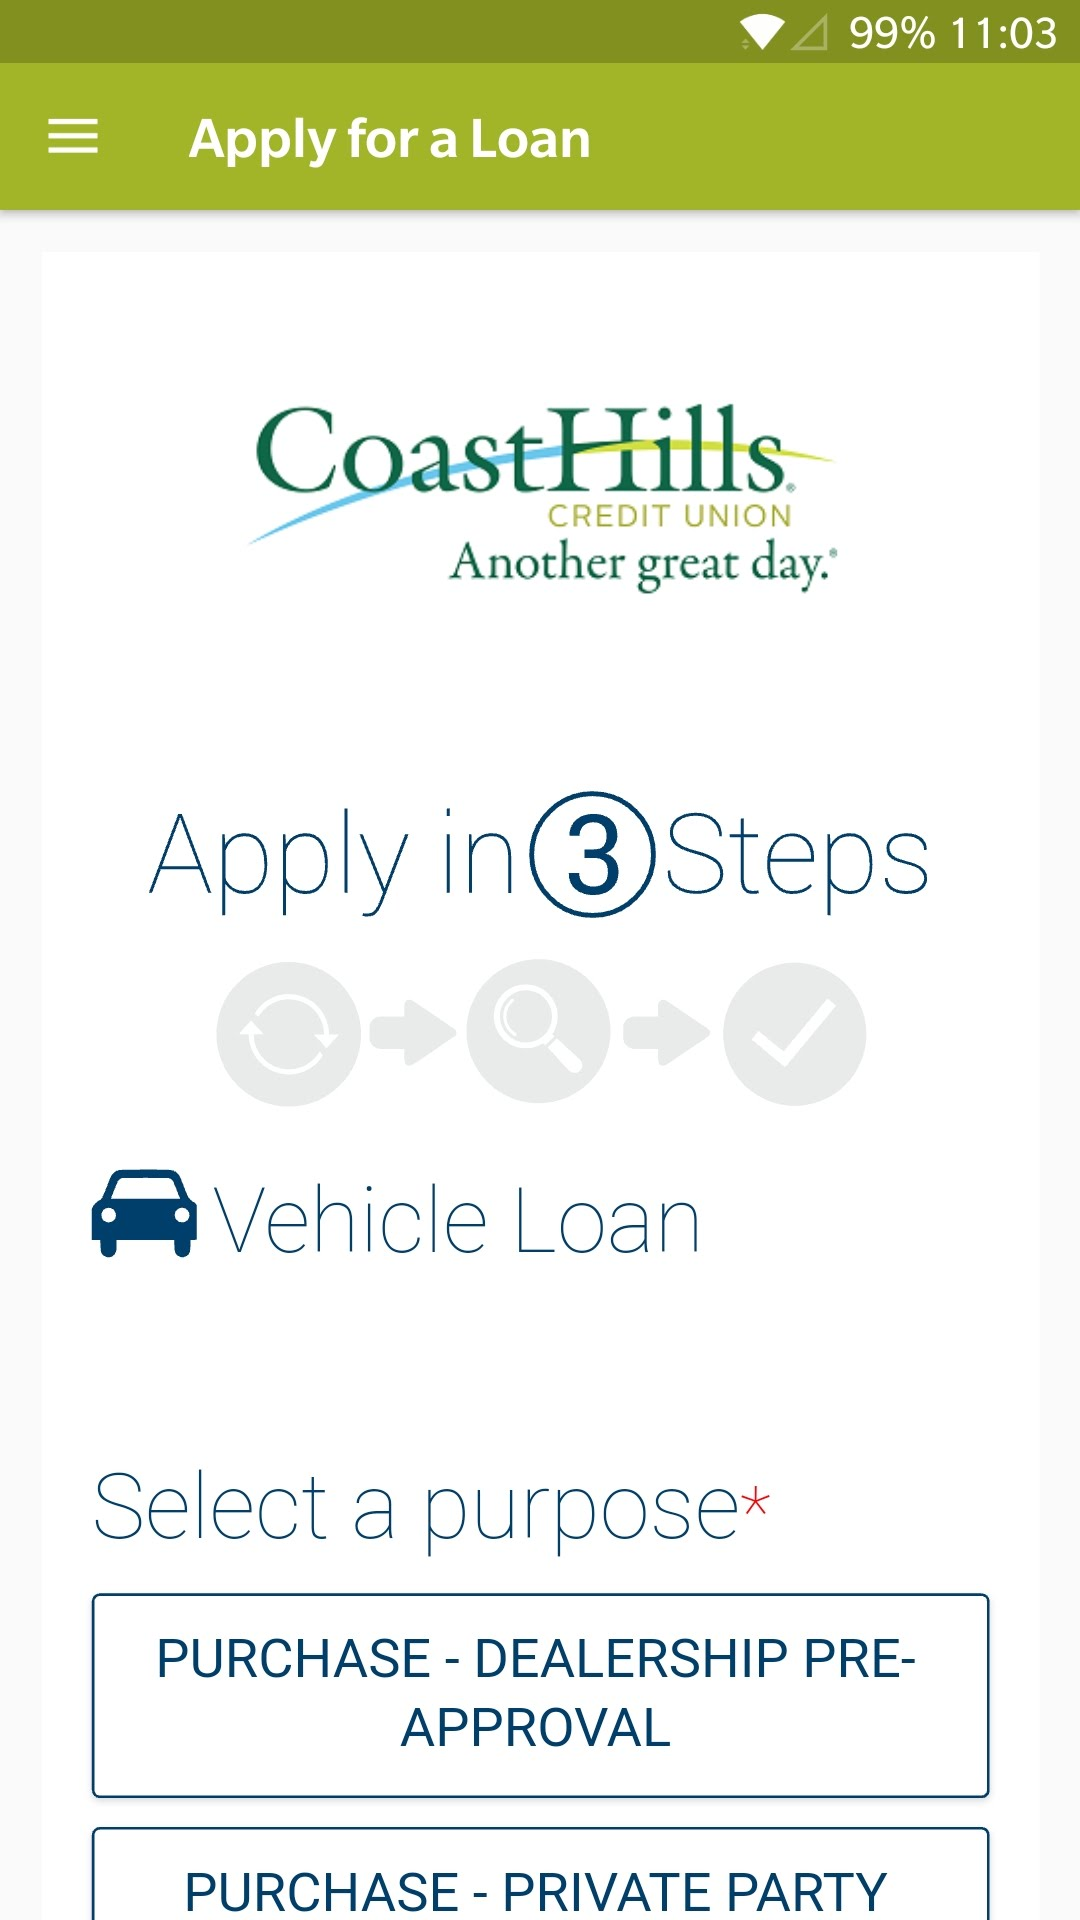 The Auto Loan application screen